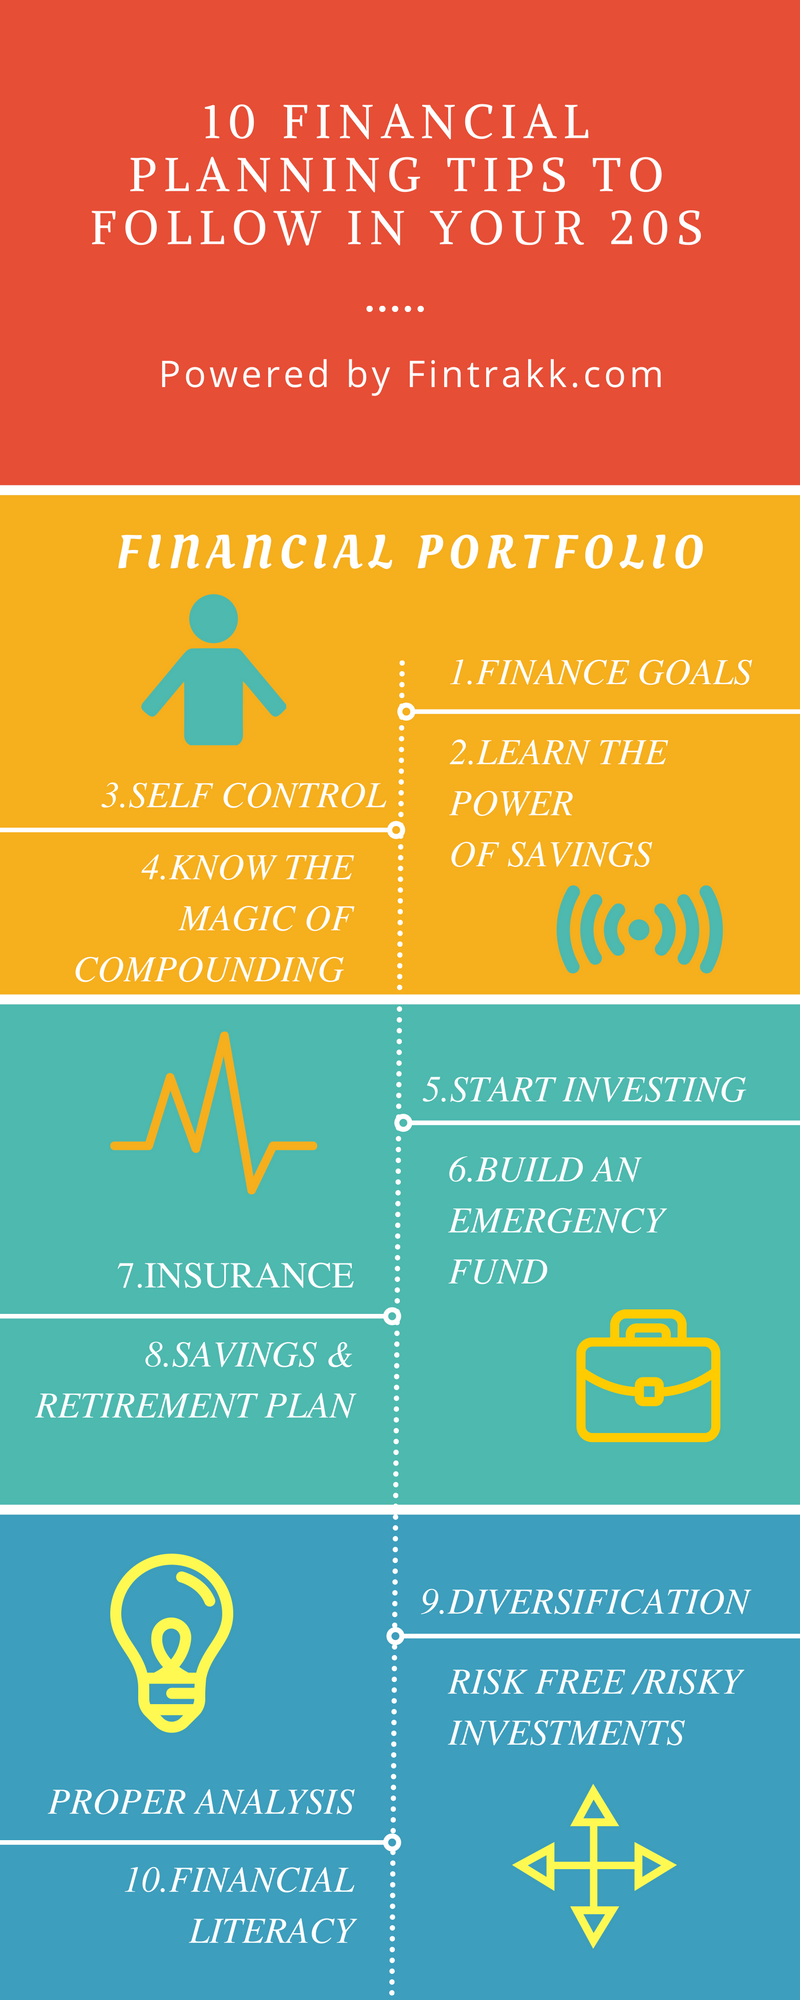 10 Financial Planning Tips To Follow In Your 20s